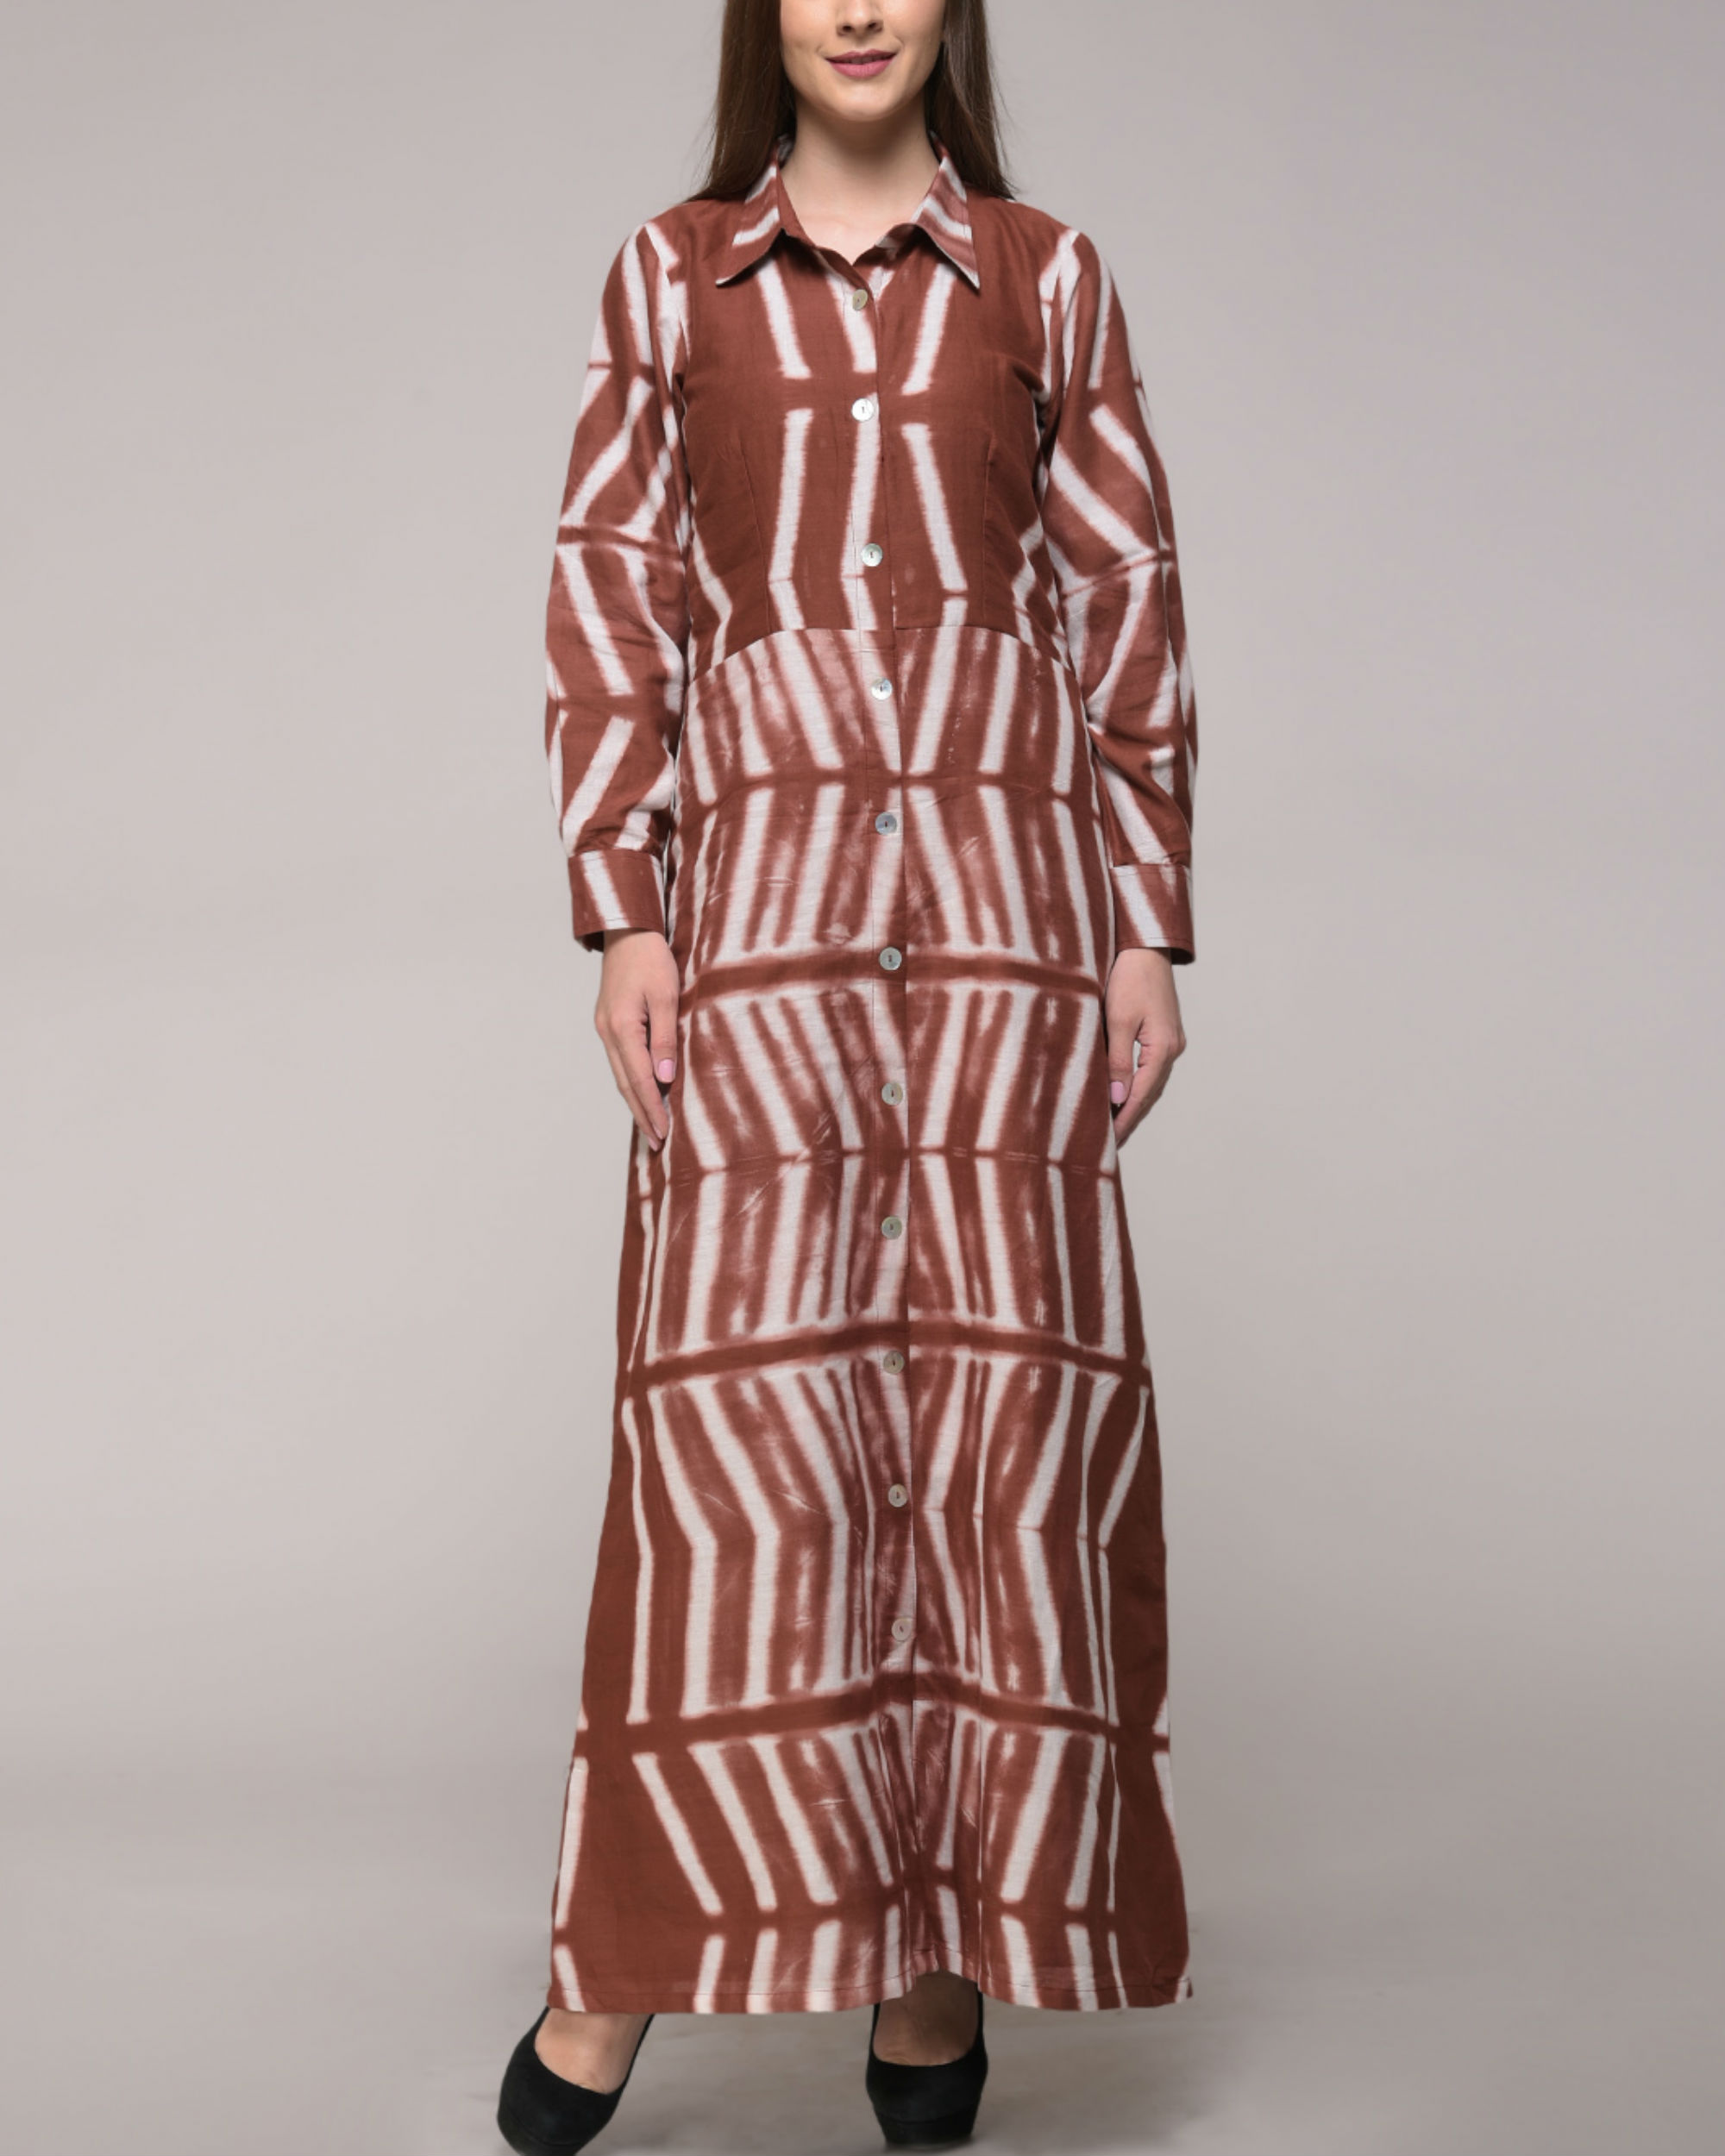 Clamp dyed brown dress